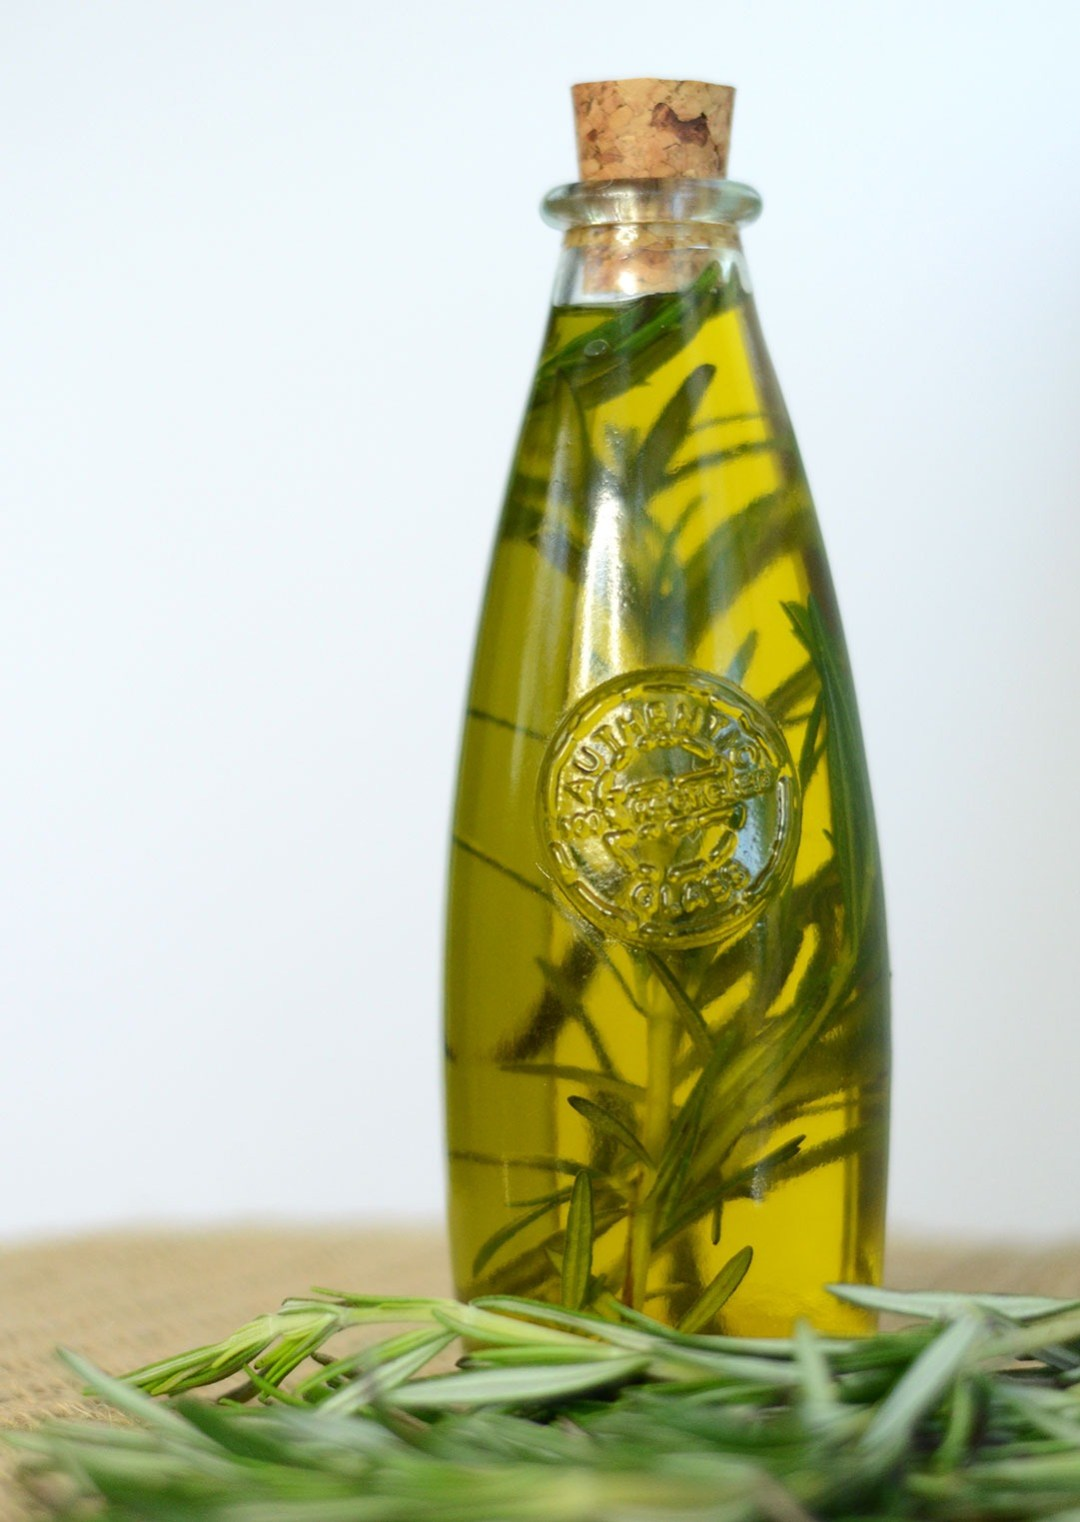 Herb-infused oil looks like a gourmet treat, but iseasy to make and can be a wonderfully unique gift. With a high quality olive oil and a bit of planning ahead, you can learn how to make herb-infused olive oil with any of your favorite herbs or spices -- like basil, rosemary, thyme, chilies, or garlic! Herb-infused oils look beautiful and taste delicious in cooking!